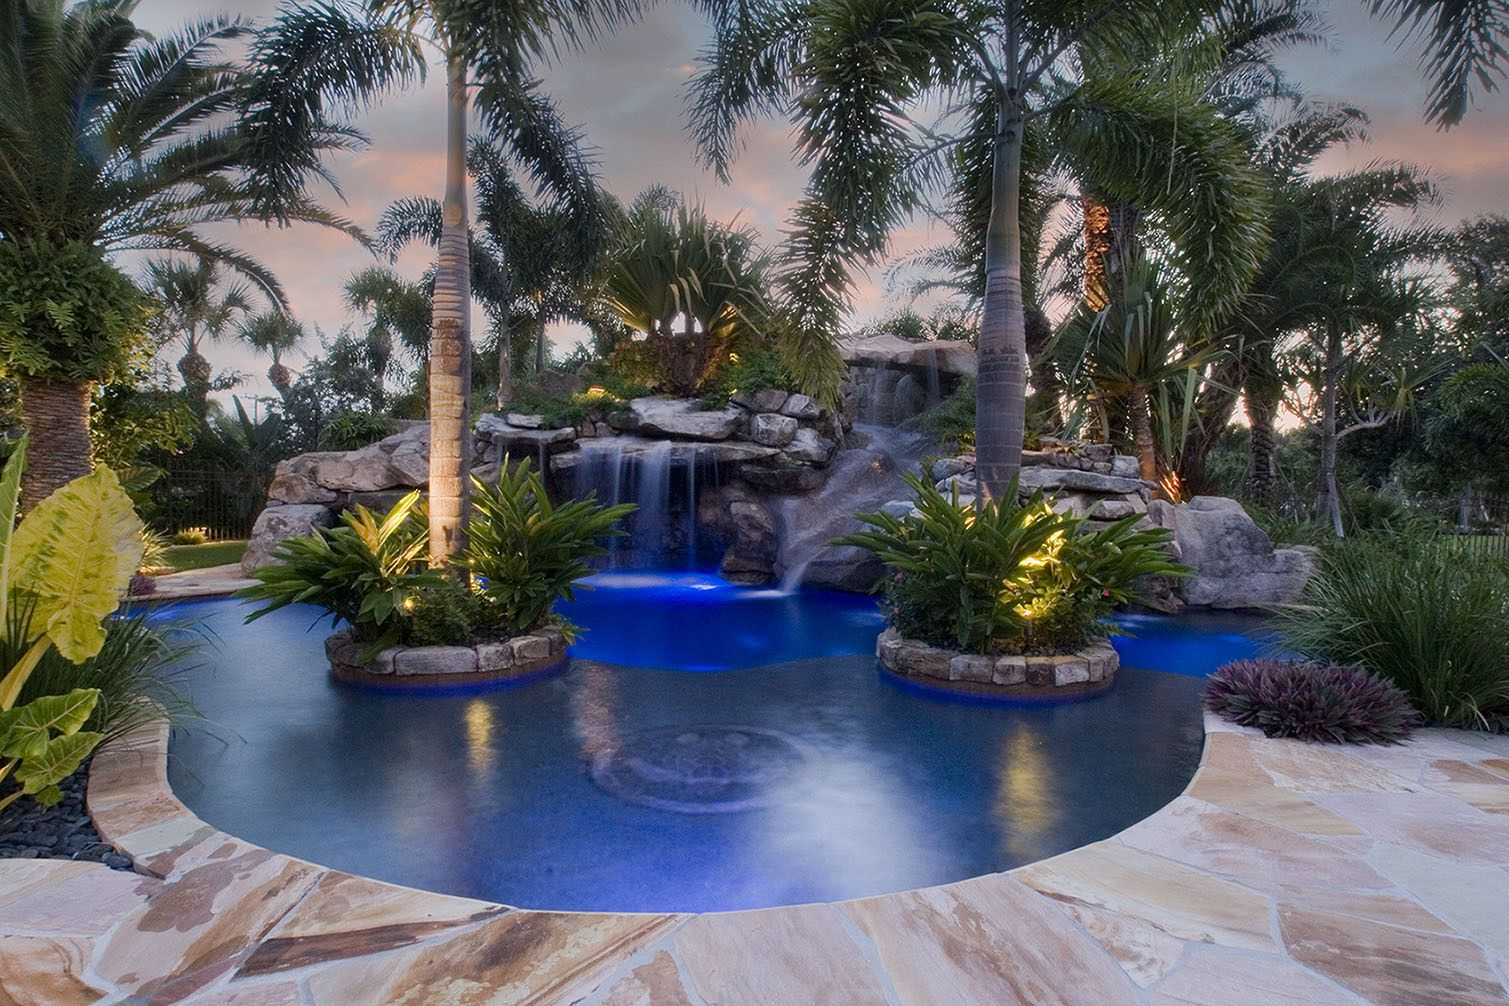 Swiming pools a heinsler front tips to apply pool designs for Pool designs florida